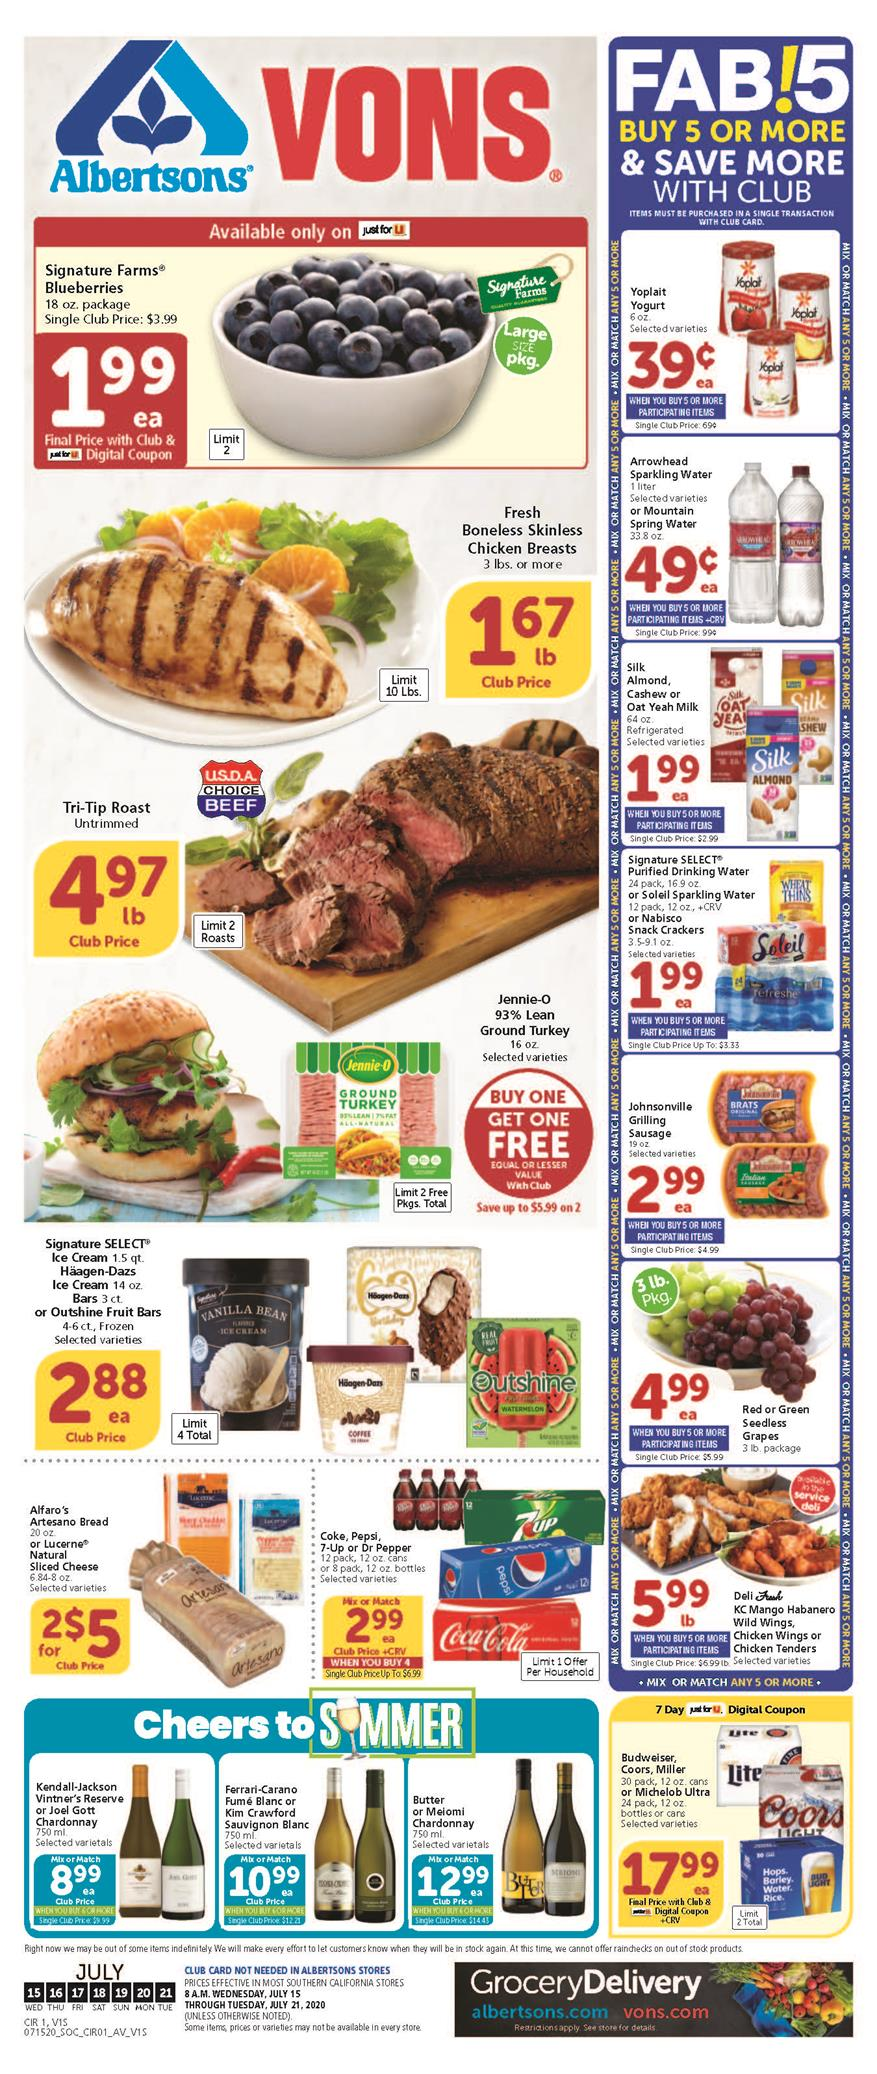 vons weekly mid july ad valid from jul 15 21 2020